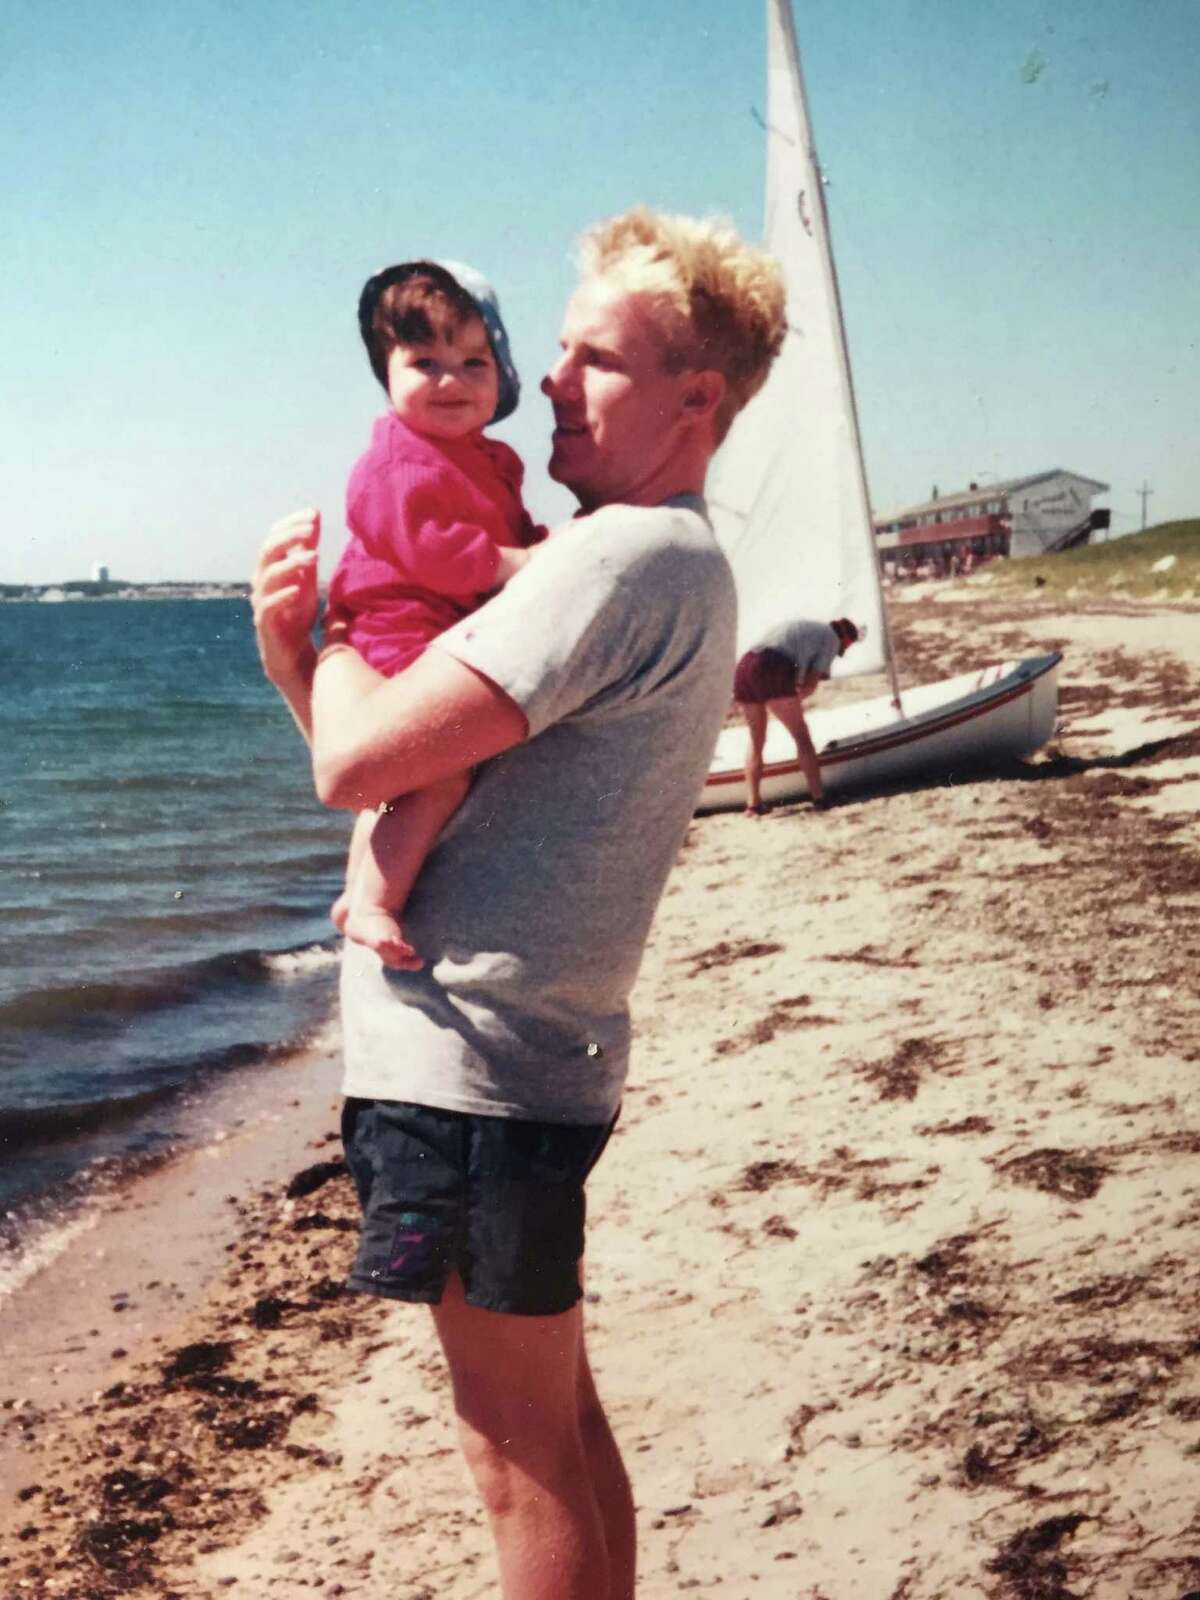 Katie Davidson, as a toddler, with her father, Brian, at the beach.